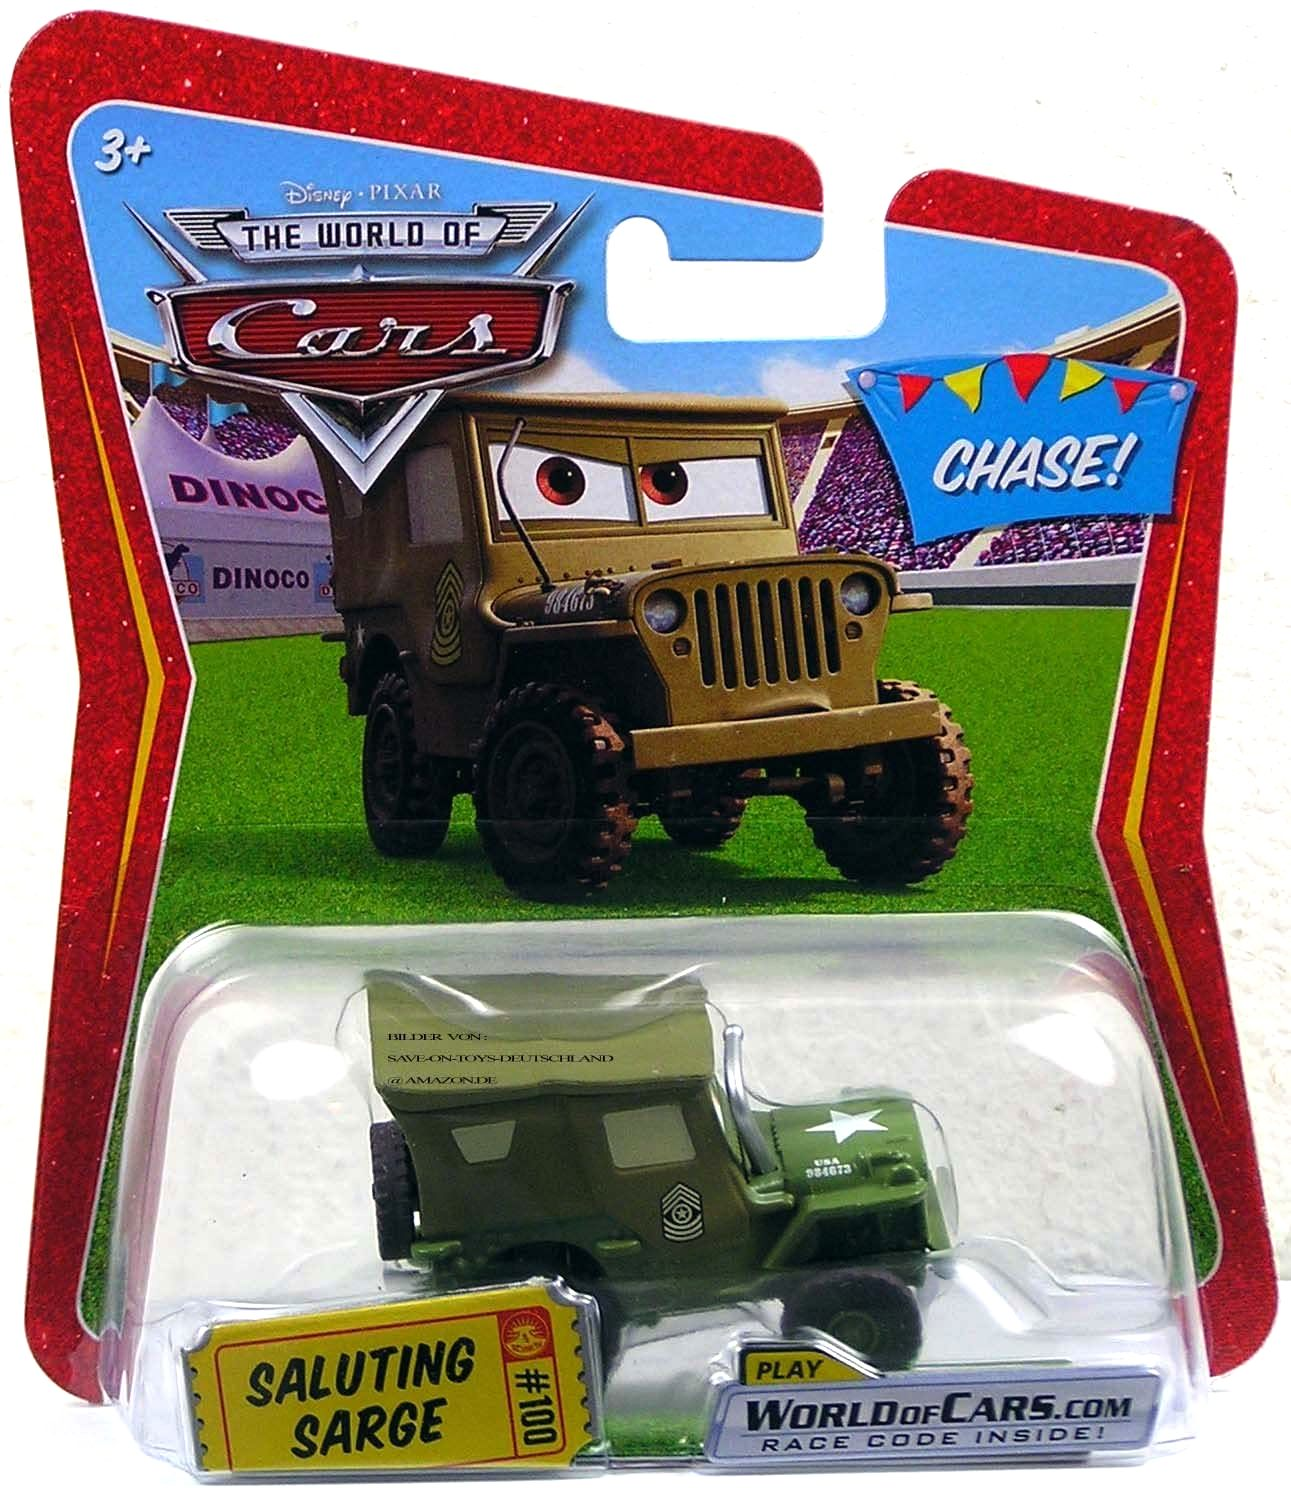 Saluting Sarge Chase Ticket 100 The World Of Cars Series 4